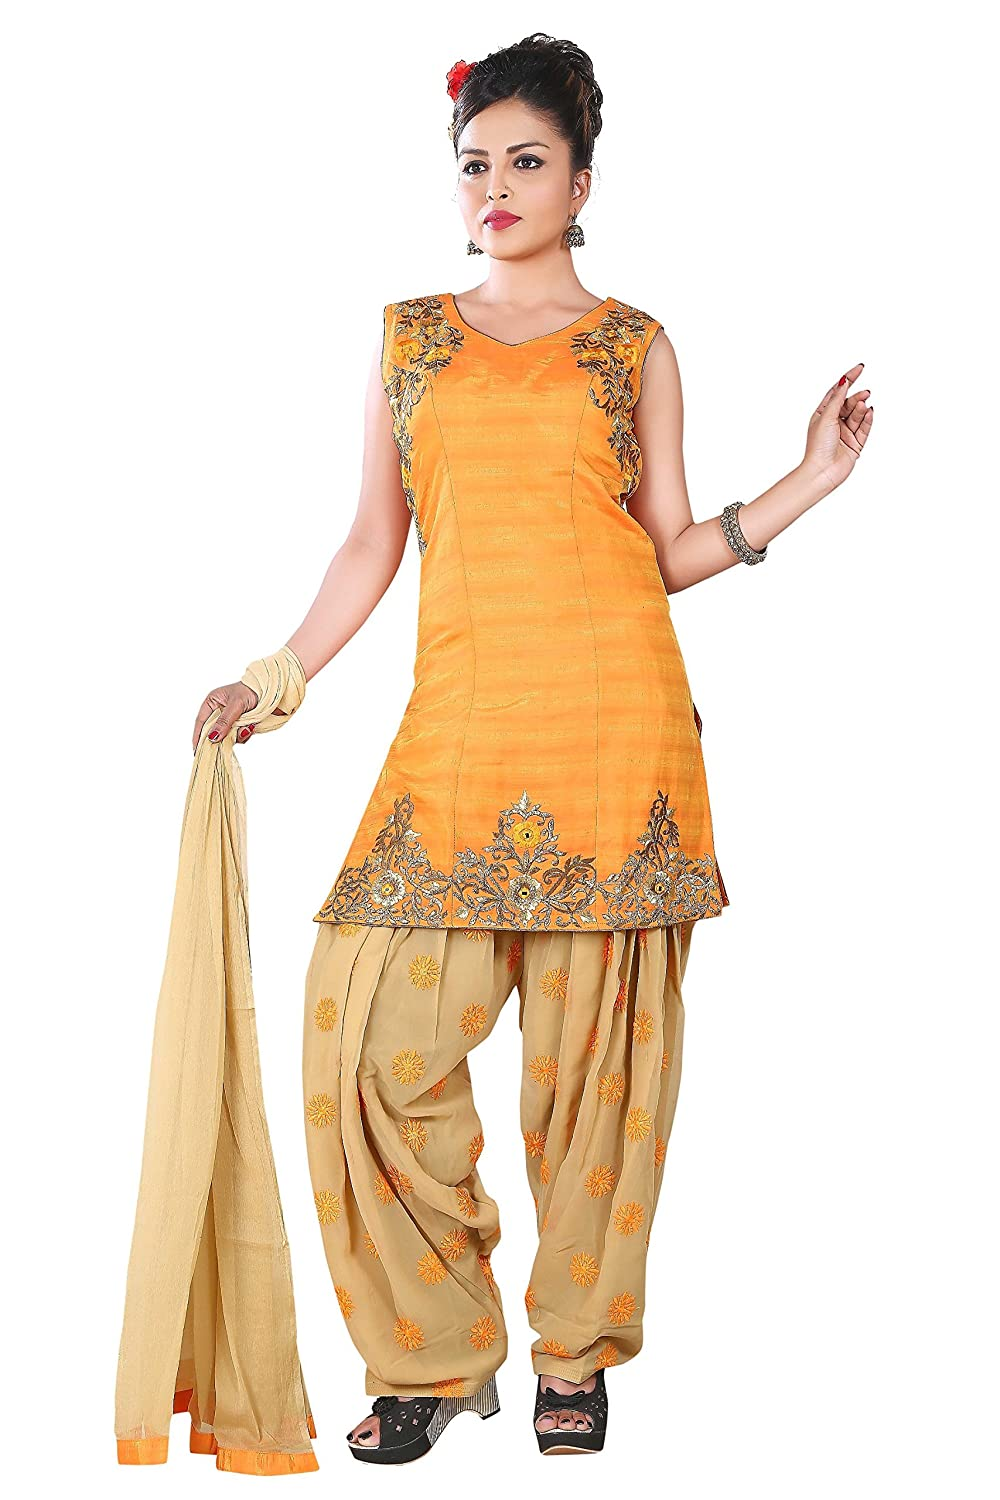 67bdd0cddc BEDI'S Ladies Readymade Suits Punjabi Patiala Salwar Kameez Suit Dress  Indian Pakistani Party WEAR Casual WEAR Straight Suit Woman Clothing  Bollywood Party ...